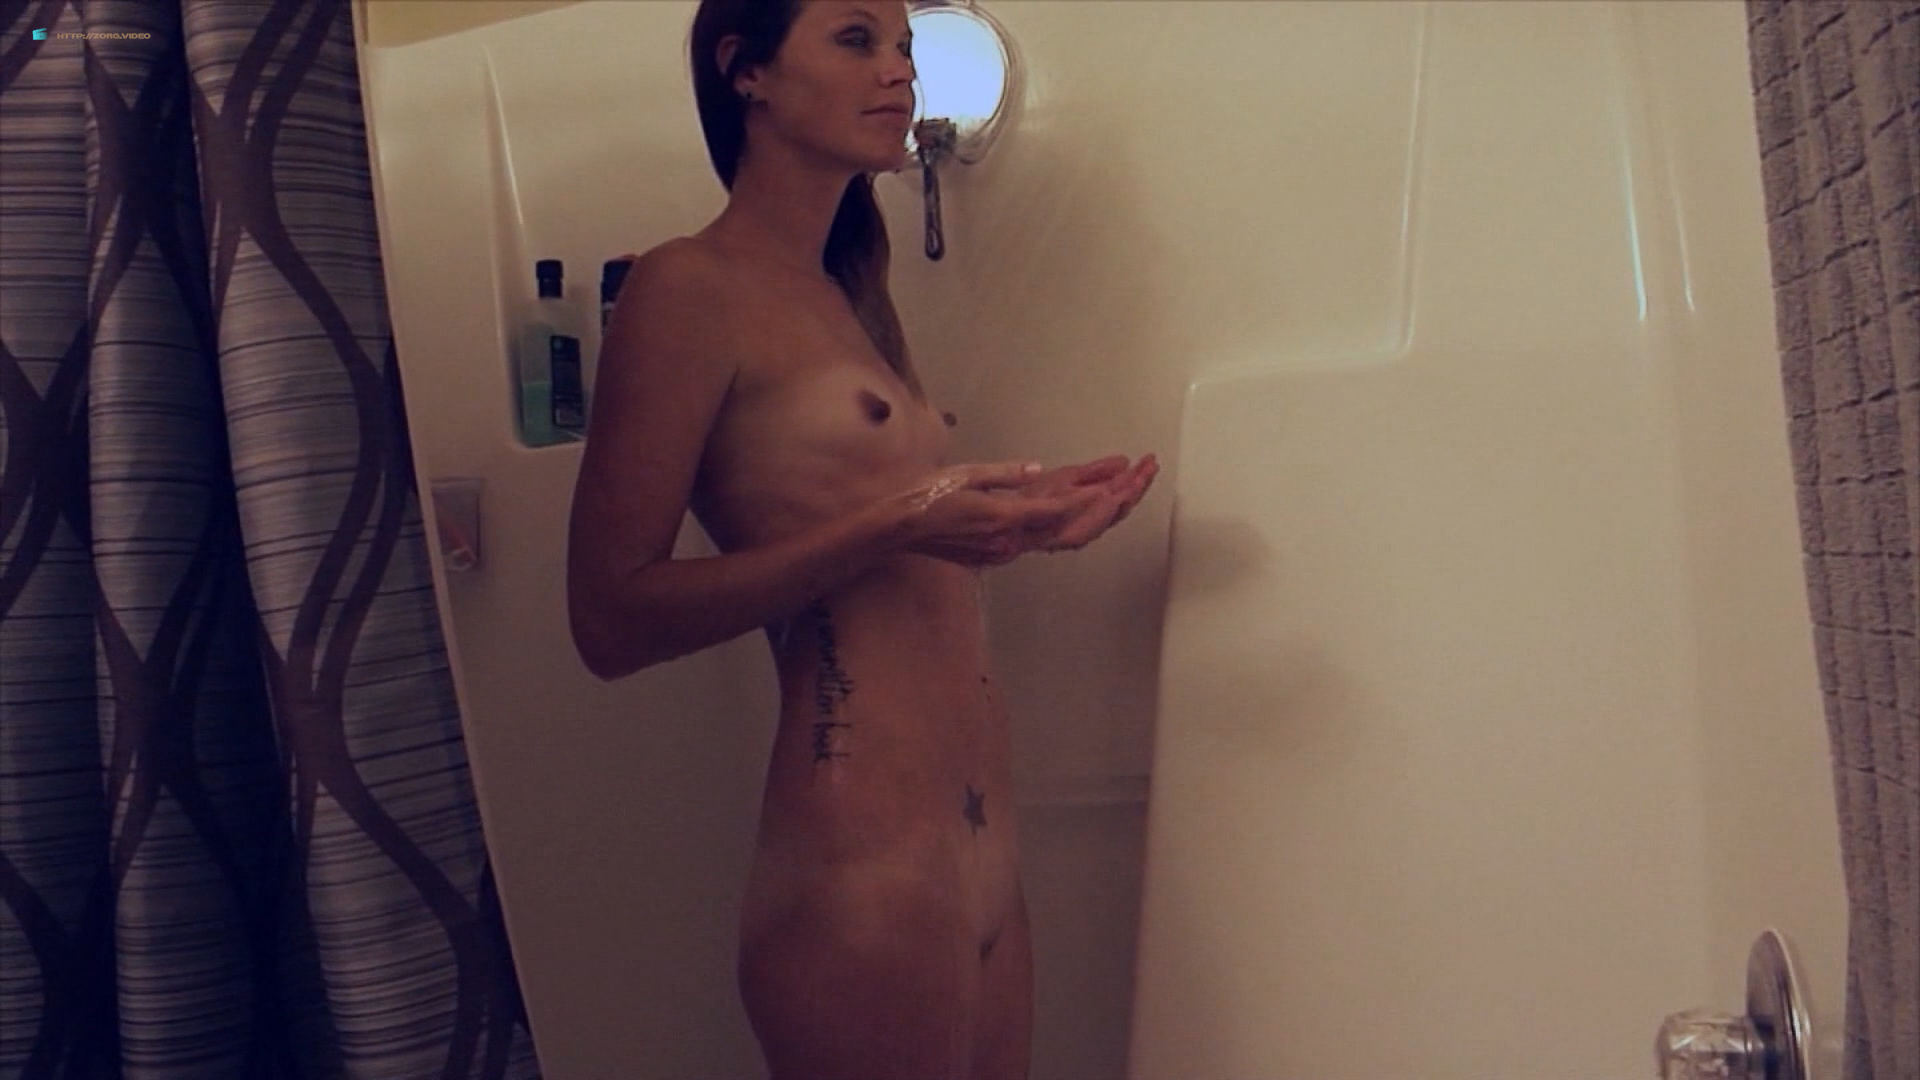 Nadia White nude bush in the shower Kody Evans nude too - Midnight Macabre (2017) HD 1080p (2)